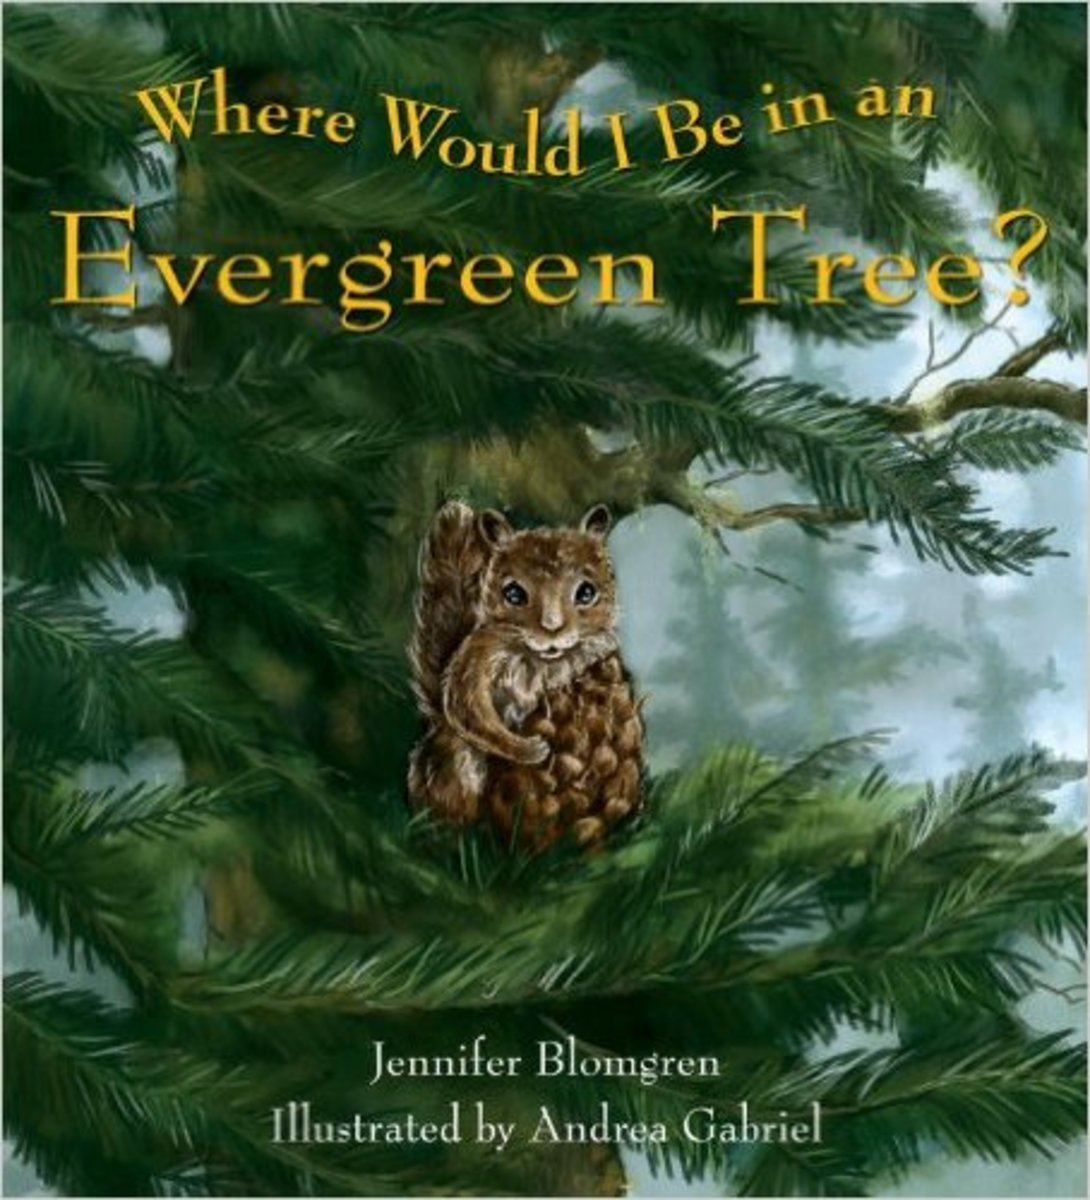 Where Would I Be in an Evergreen Tree? by Jennifer Blomgren - Images are from amazon.com.